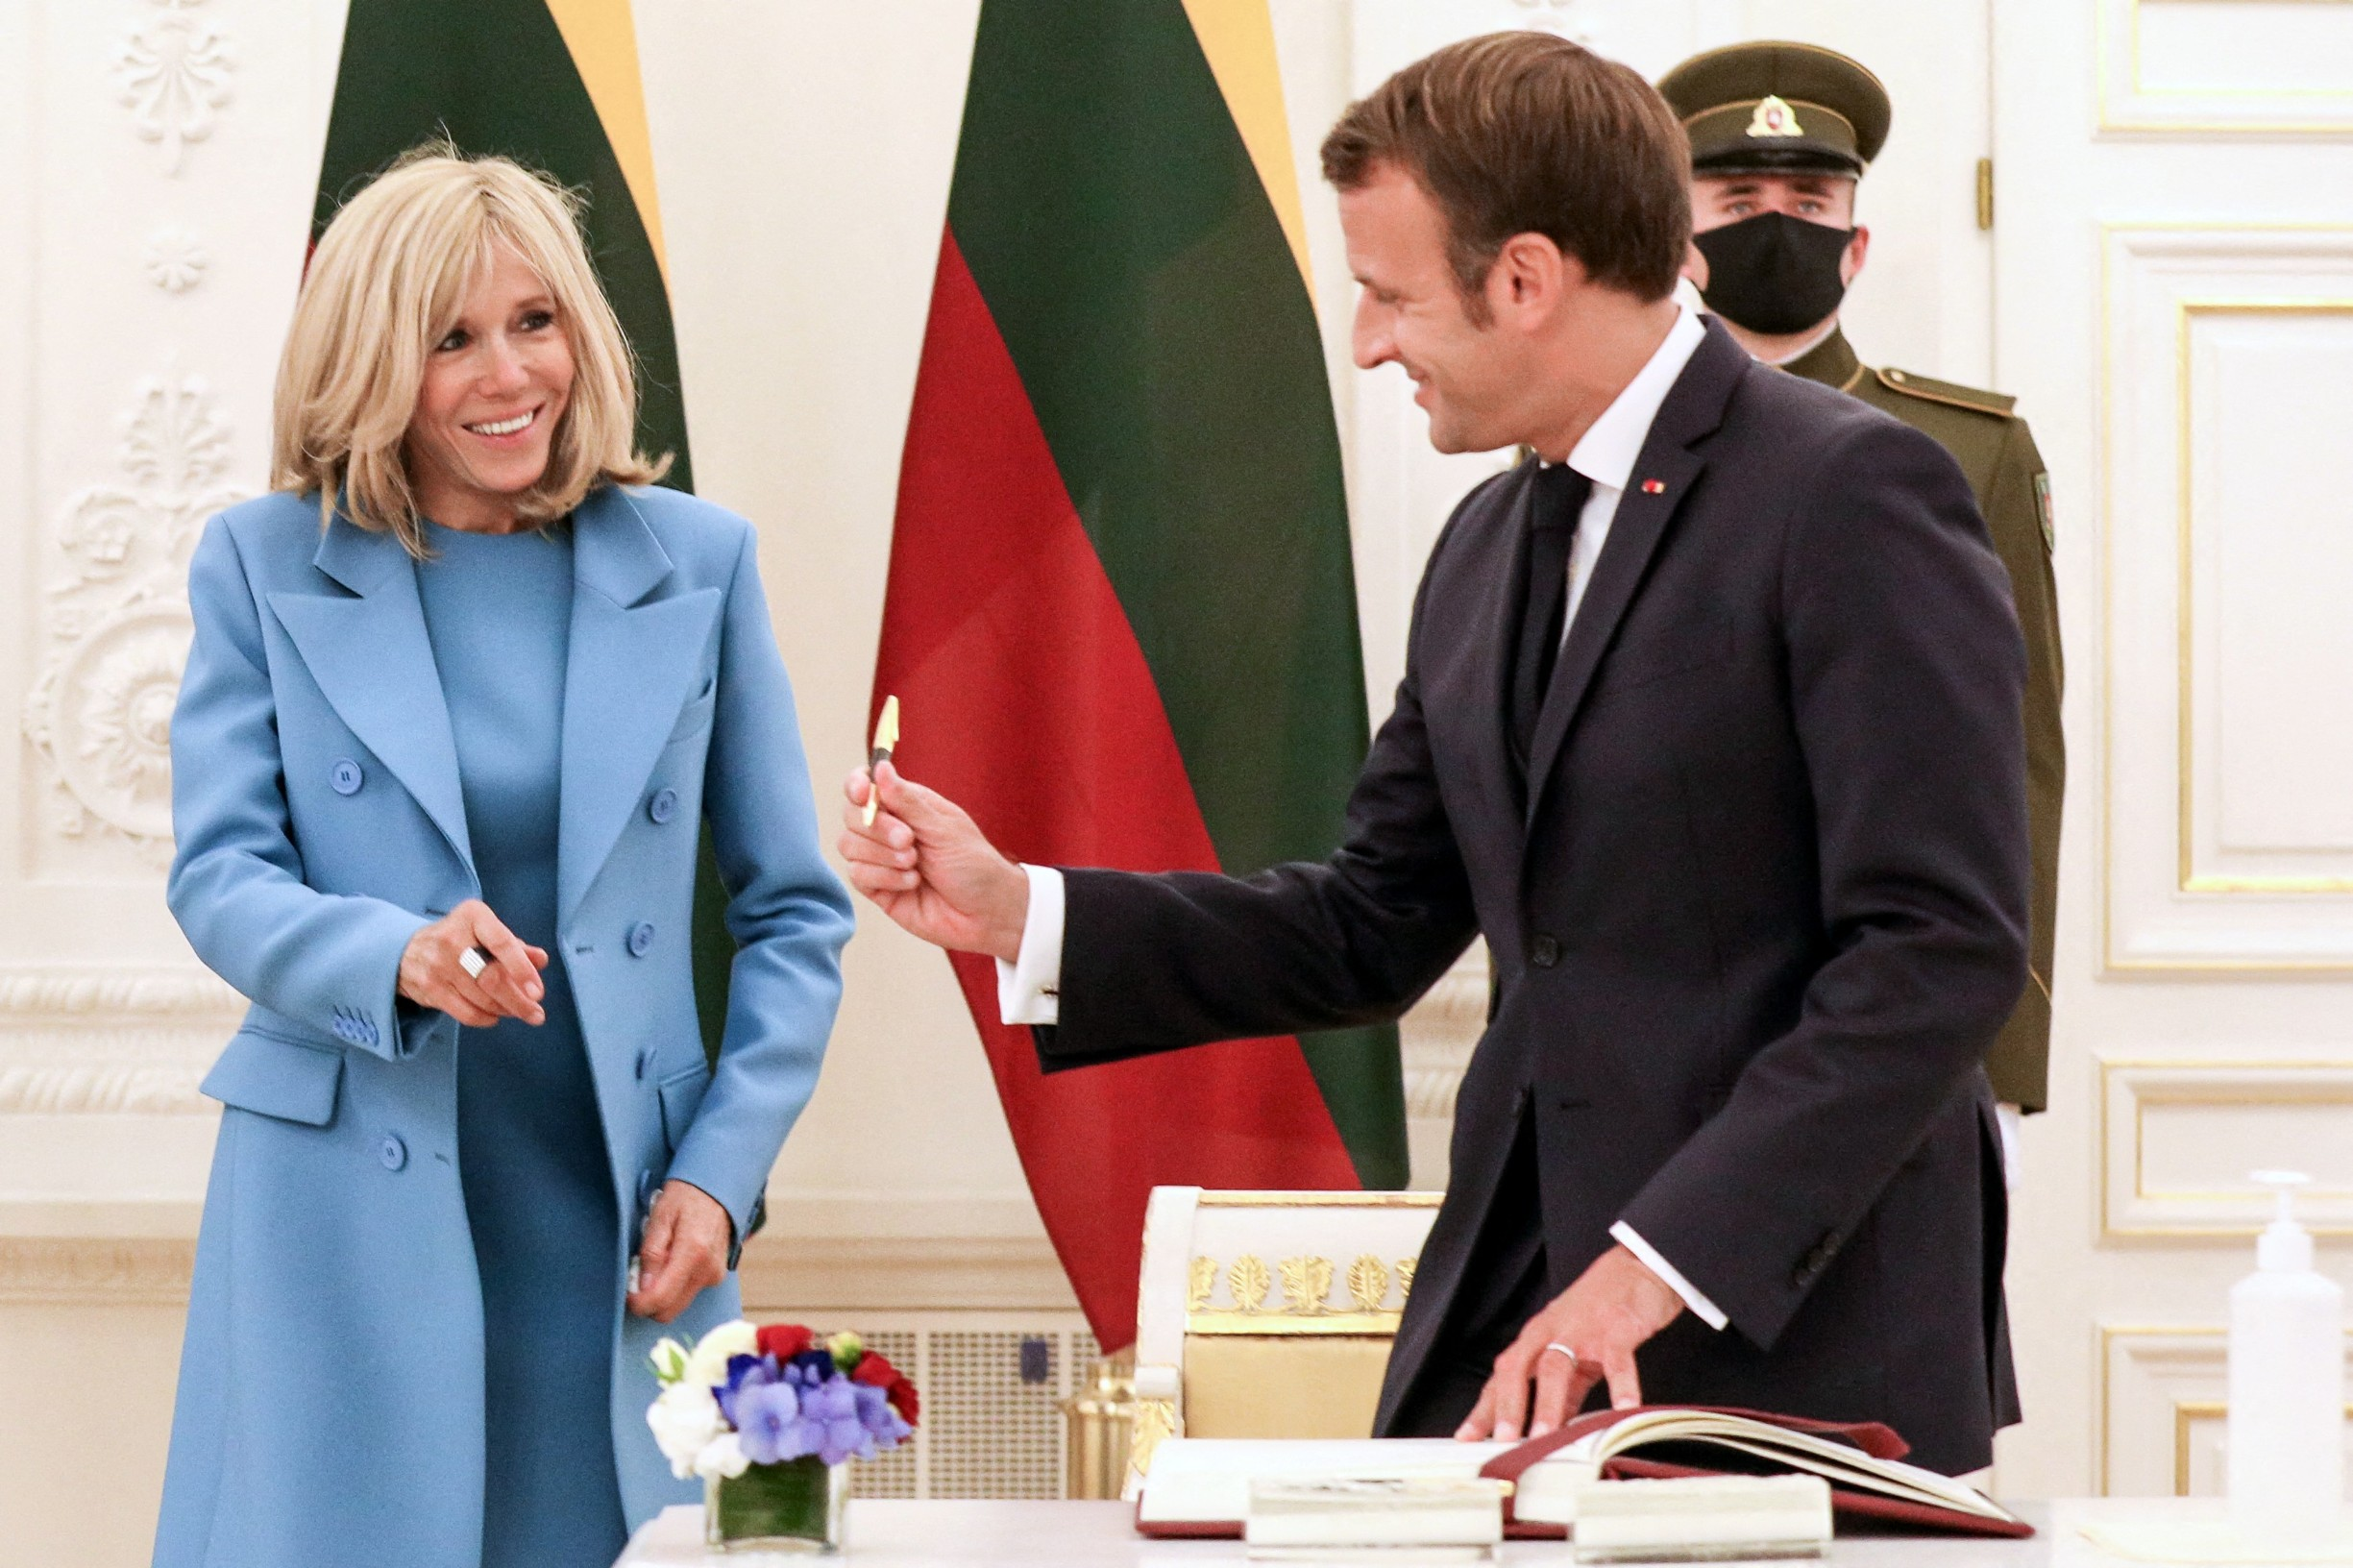 French President Emmanuel Macron and his wife Brigitte are greeted by Lithuania's President ahead of a meeting at the Presidential Palace in Vilnius, Lithuania on September 28, 2020.,Image: 560402800, License: Rights-managed, Restrictions: , Model Release: no, Credit line: Lemouton Stephane/Pool/ABACA / Abaca Press / Profimedia